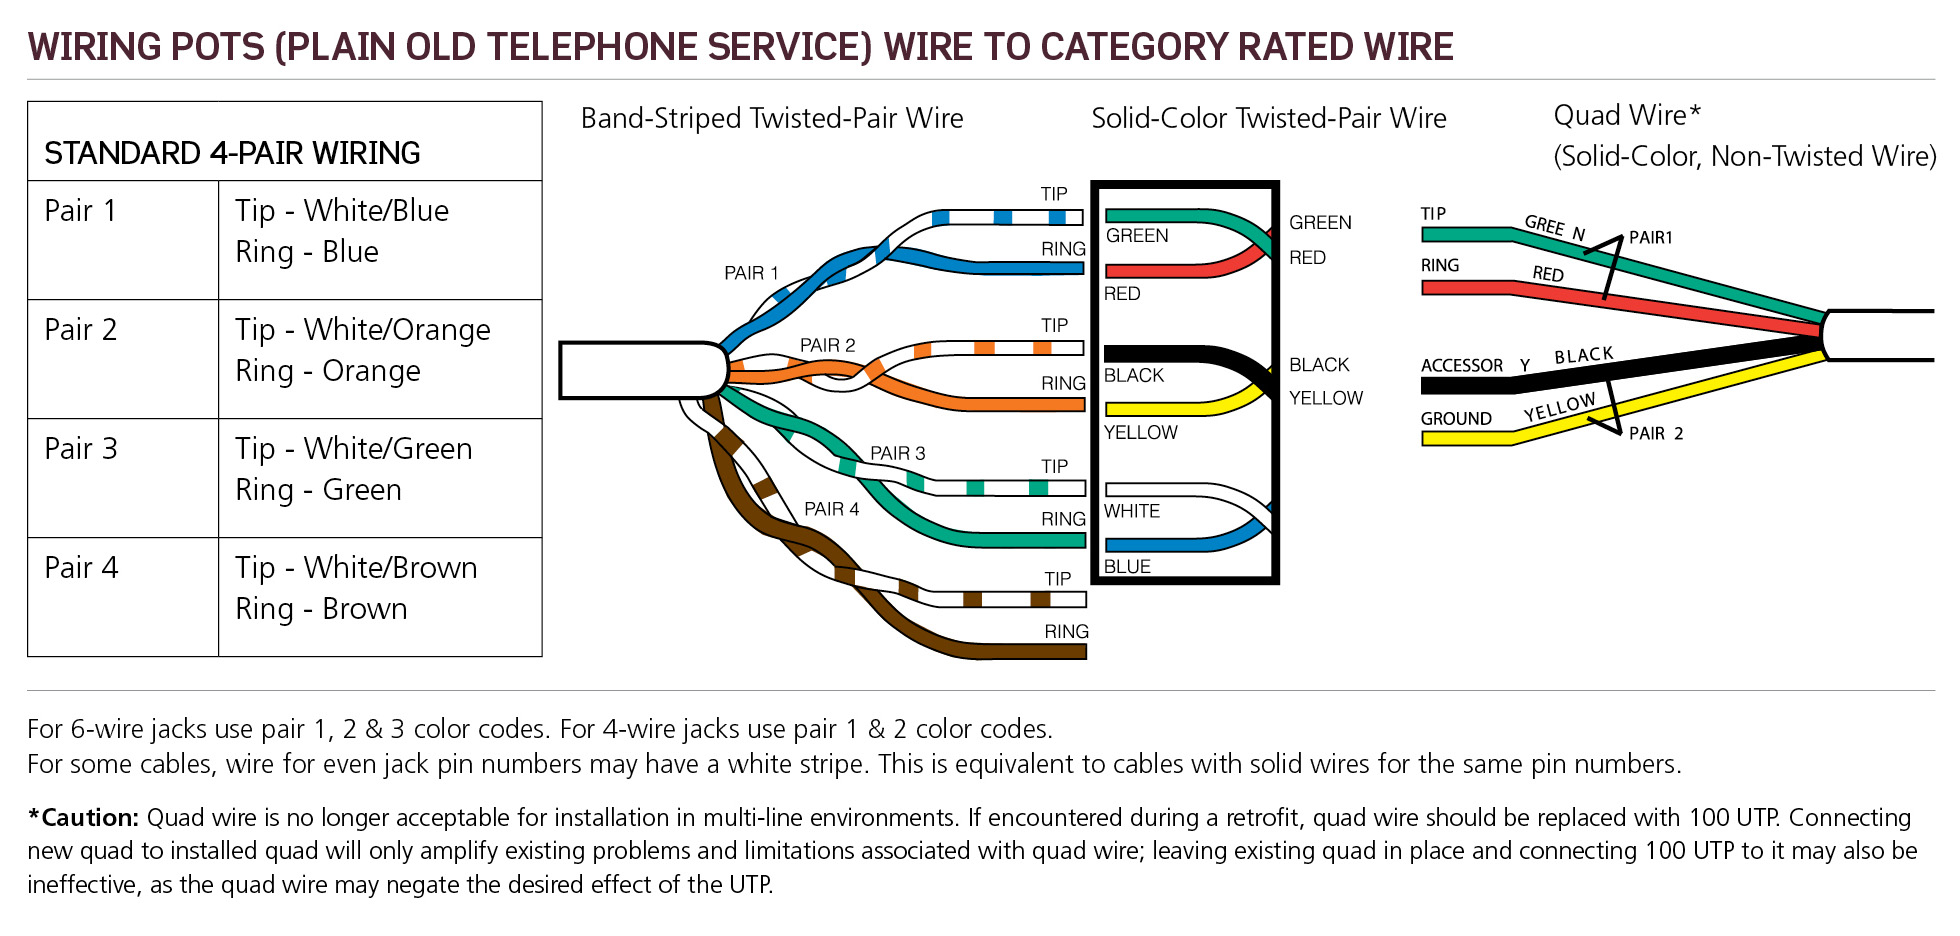 small resolution of pots plain old telephone service wiring leviton made easy blog garage wiring standard are you staring